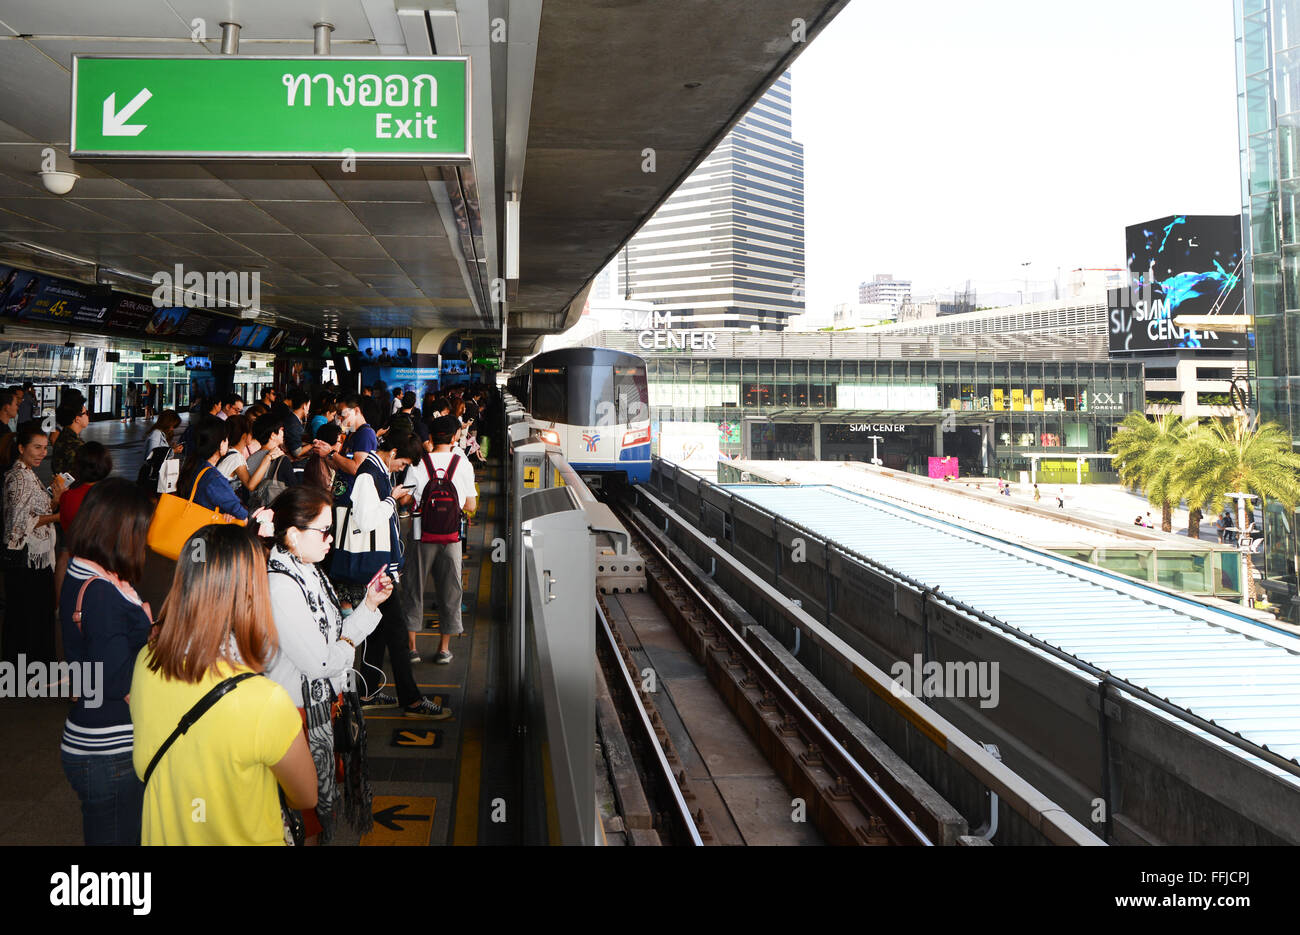 Passengers waiting for the BTS skytrain at Siam sq. station in Bangkok. - Stock Image